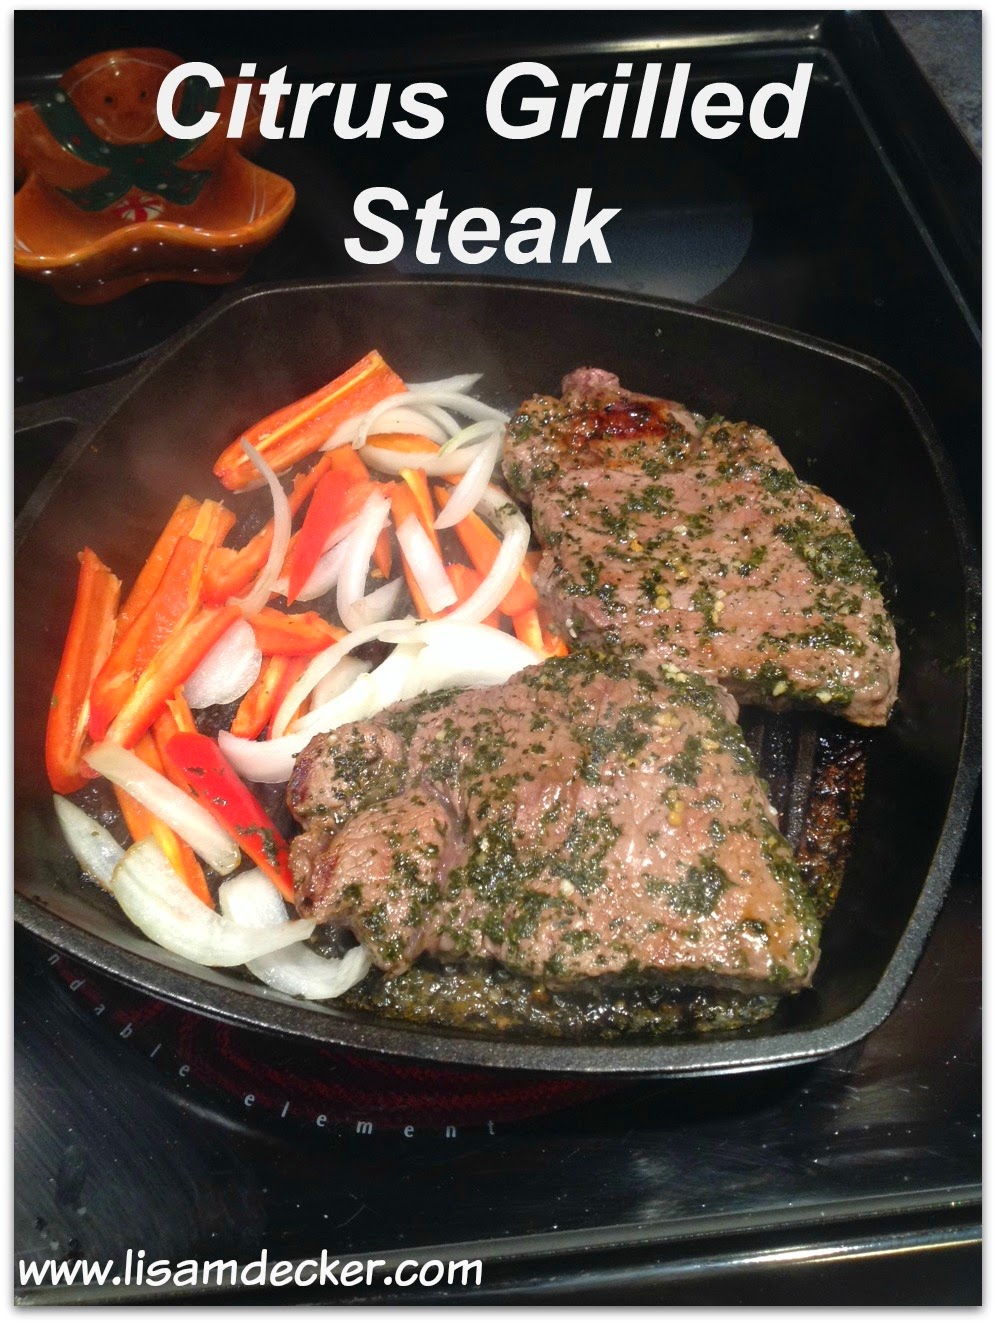 Insanity Max 30 Nutrition Guide, Citrus Grilled Steak